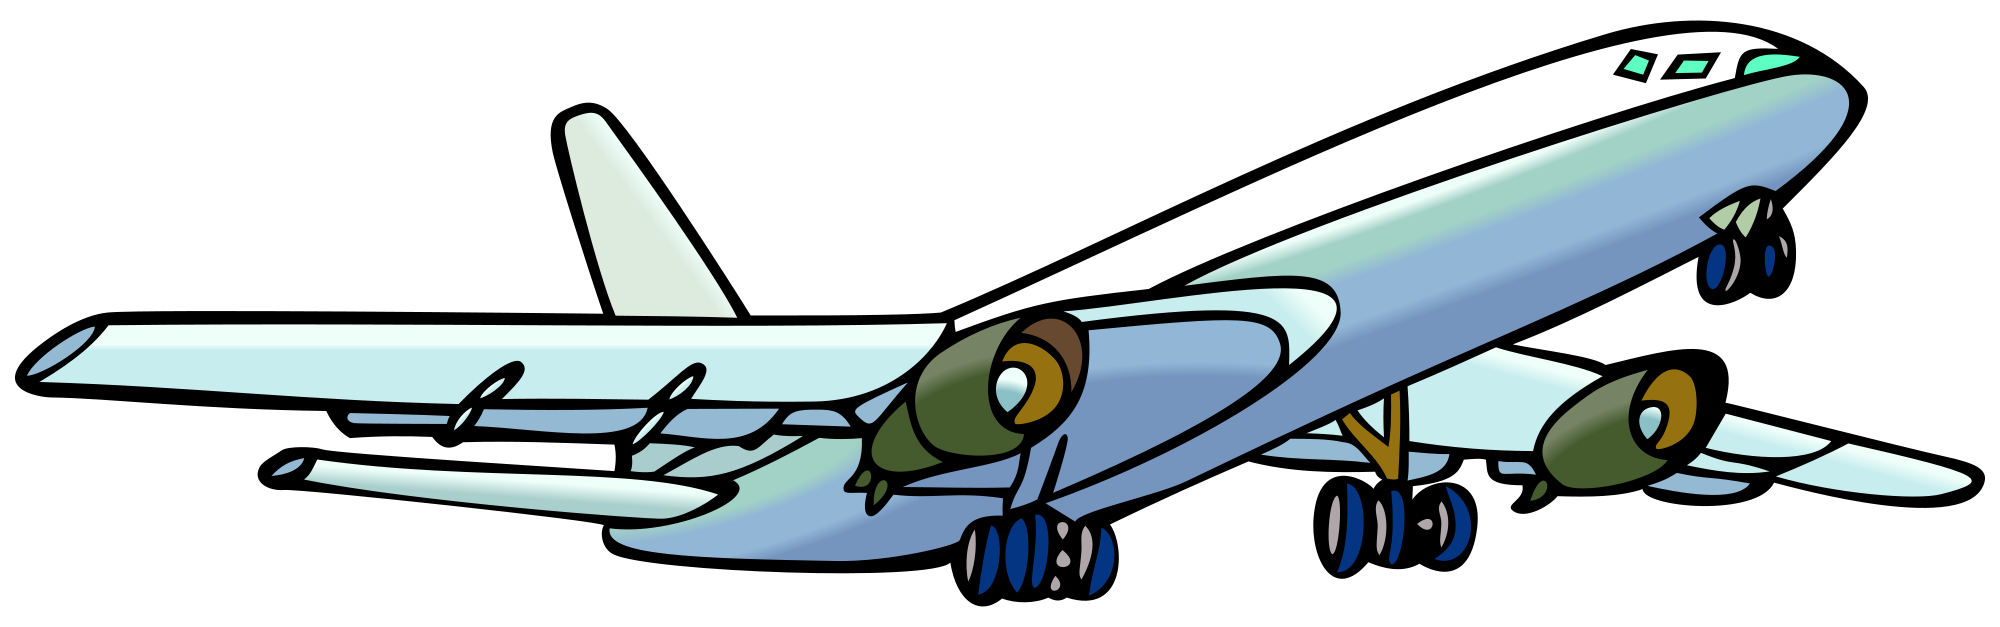 picture royalty free library File airplane svg wikimedia. Commons clipart